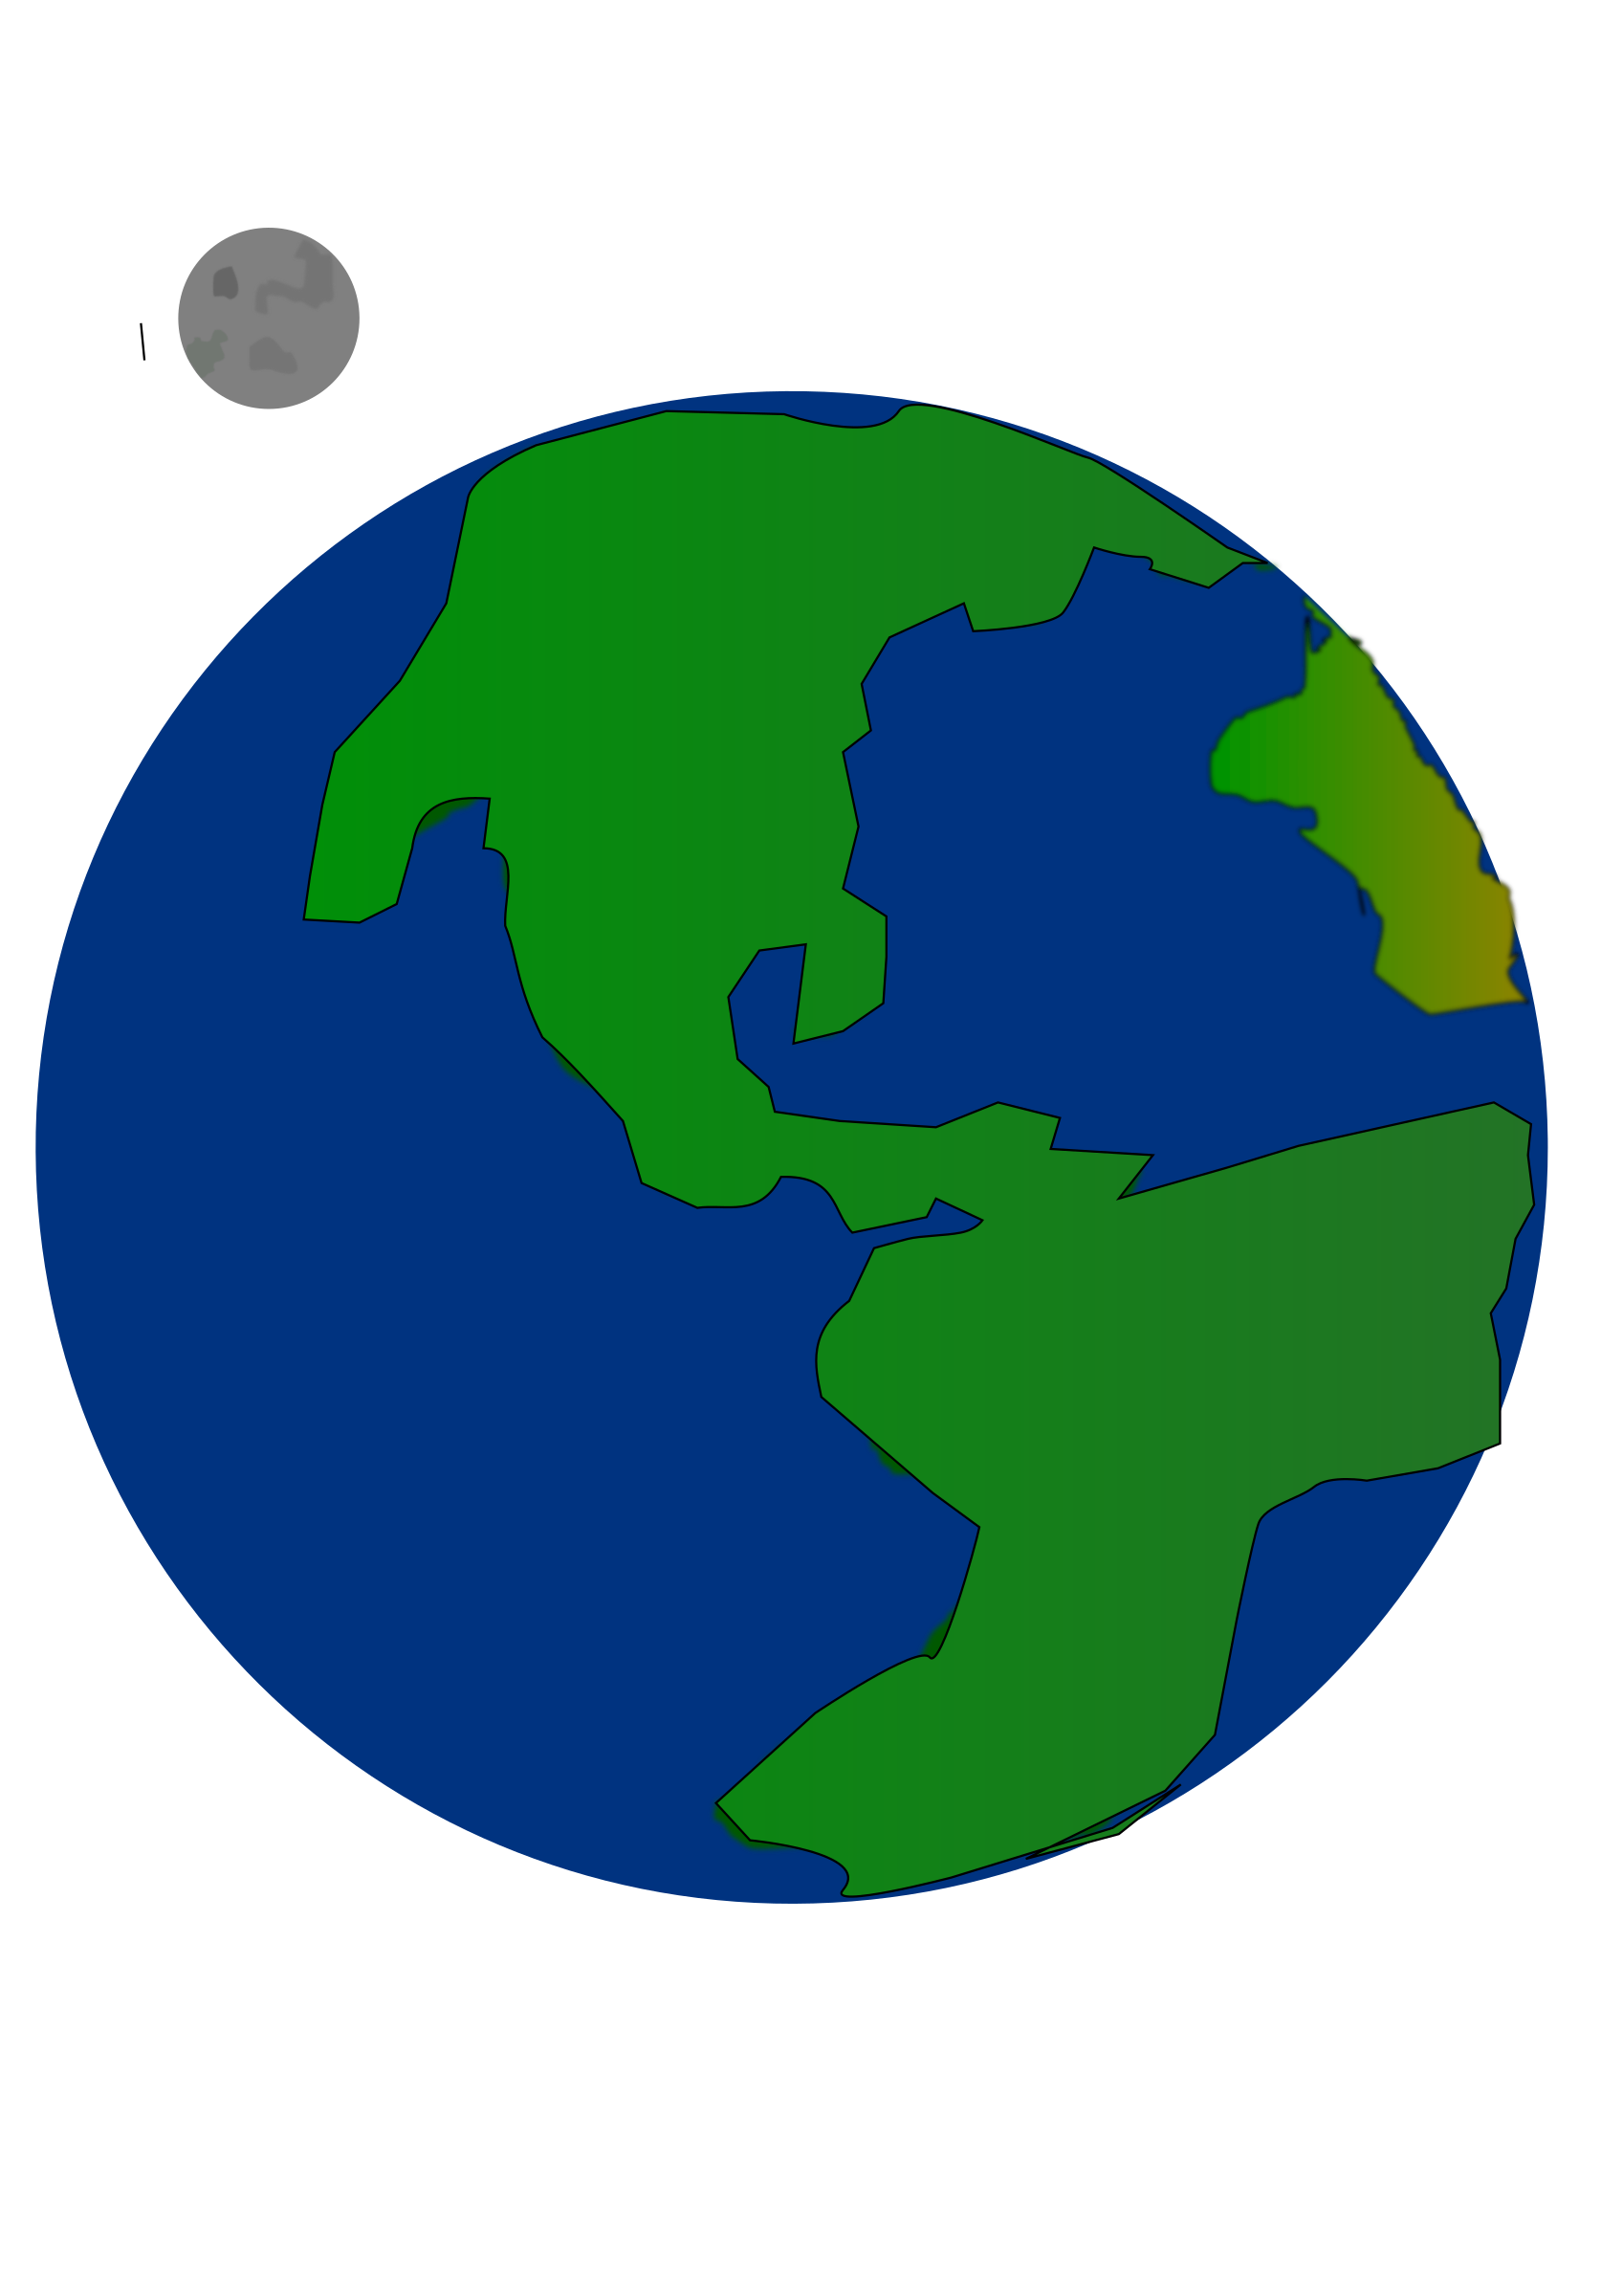 Globe clipart planet earth. Big image png